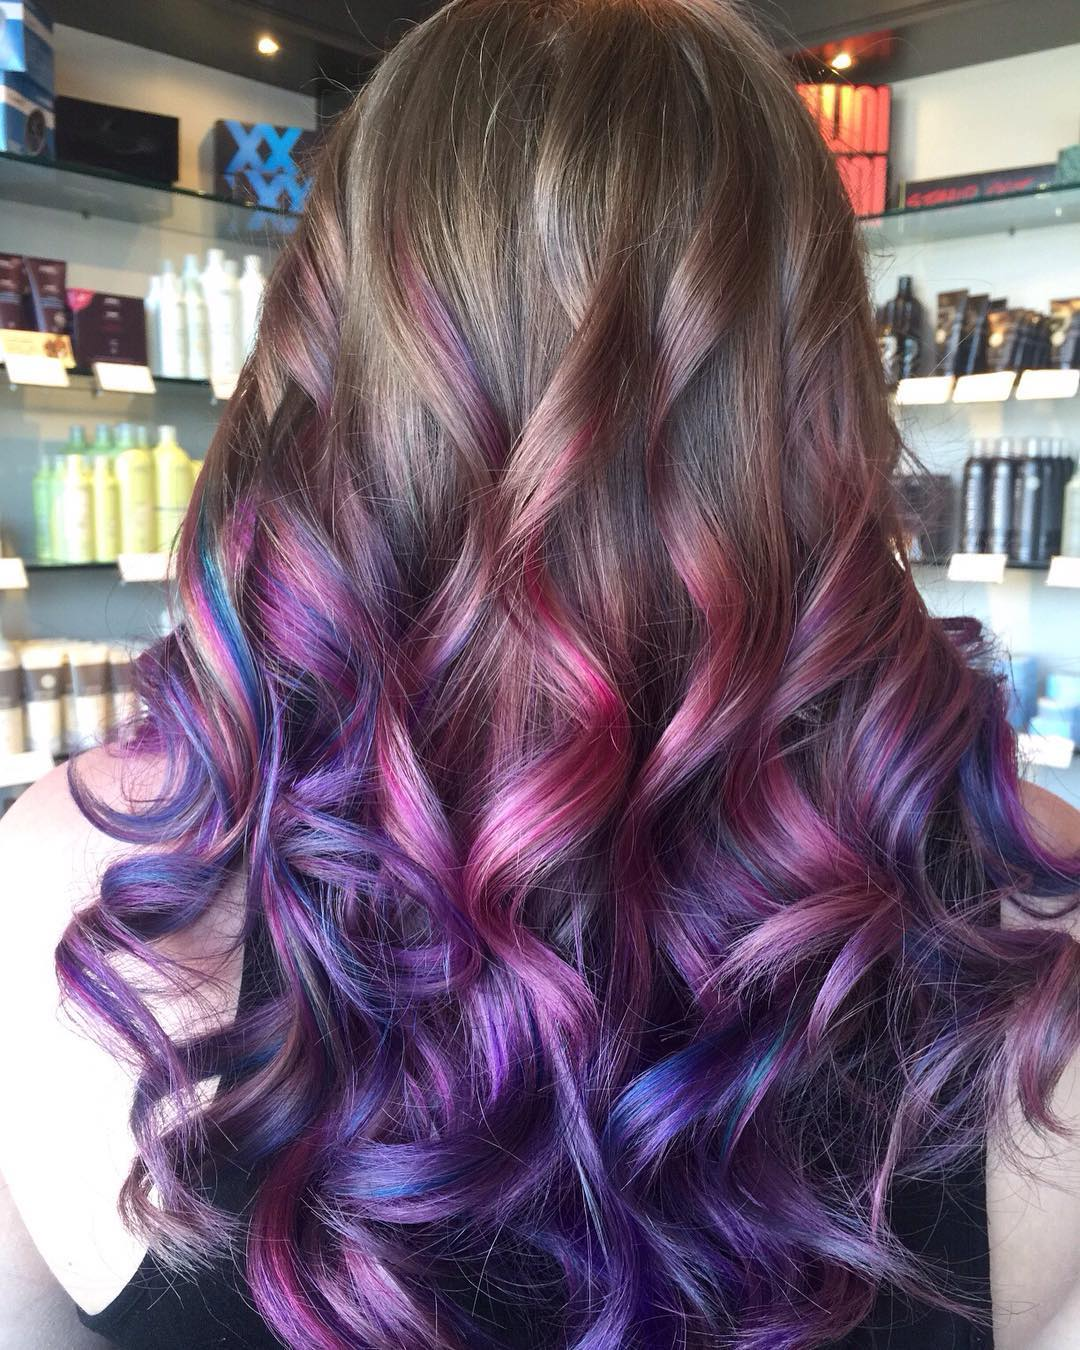 Purple and brown ombre hair photo recommendations to wear in spring in 2019